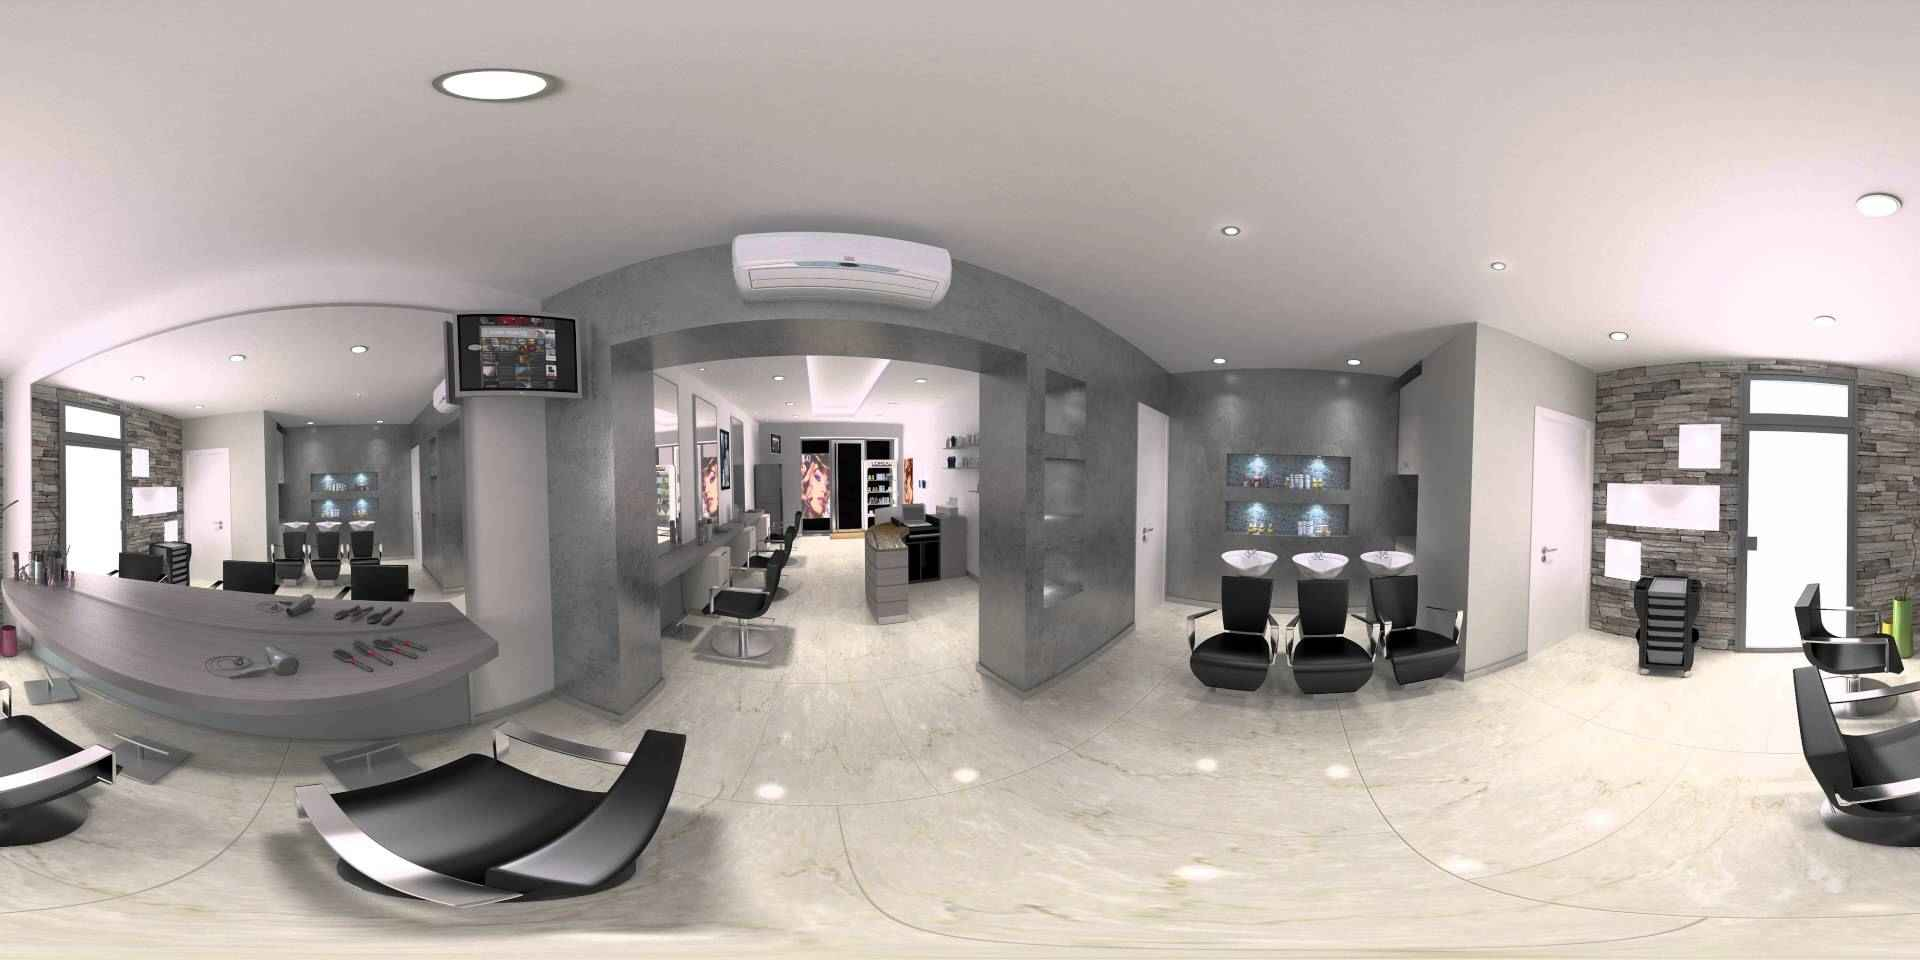 360 rendering used to show the inside of a house